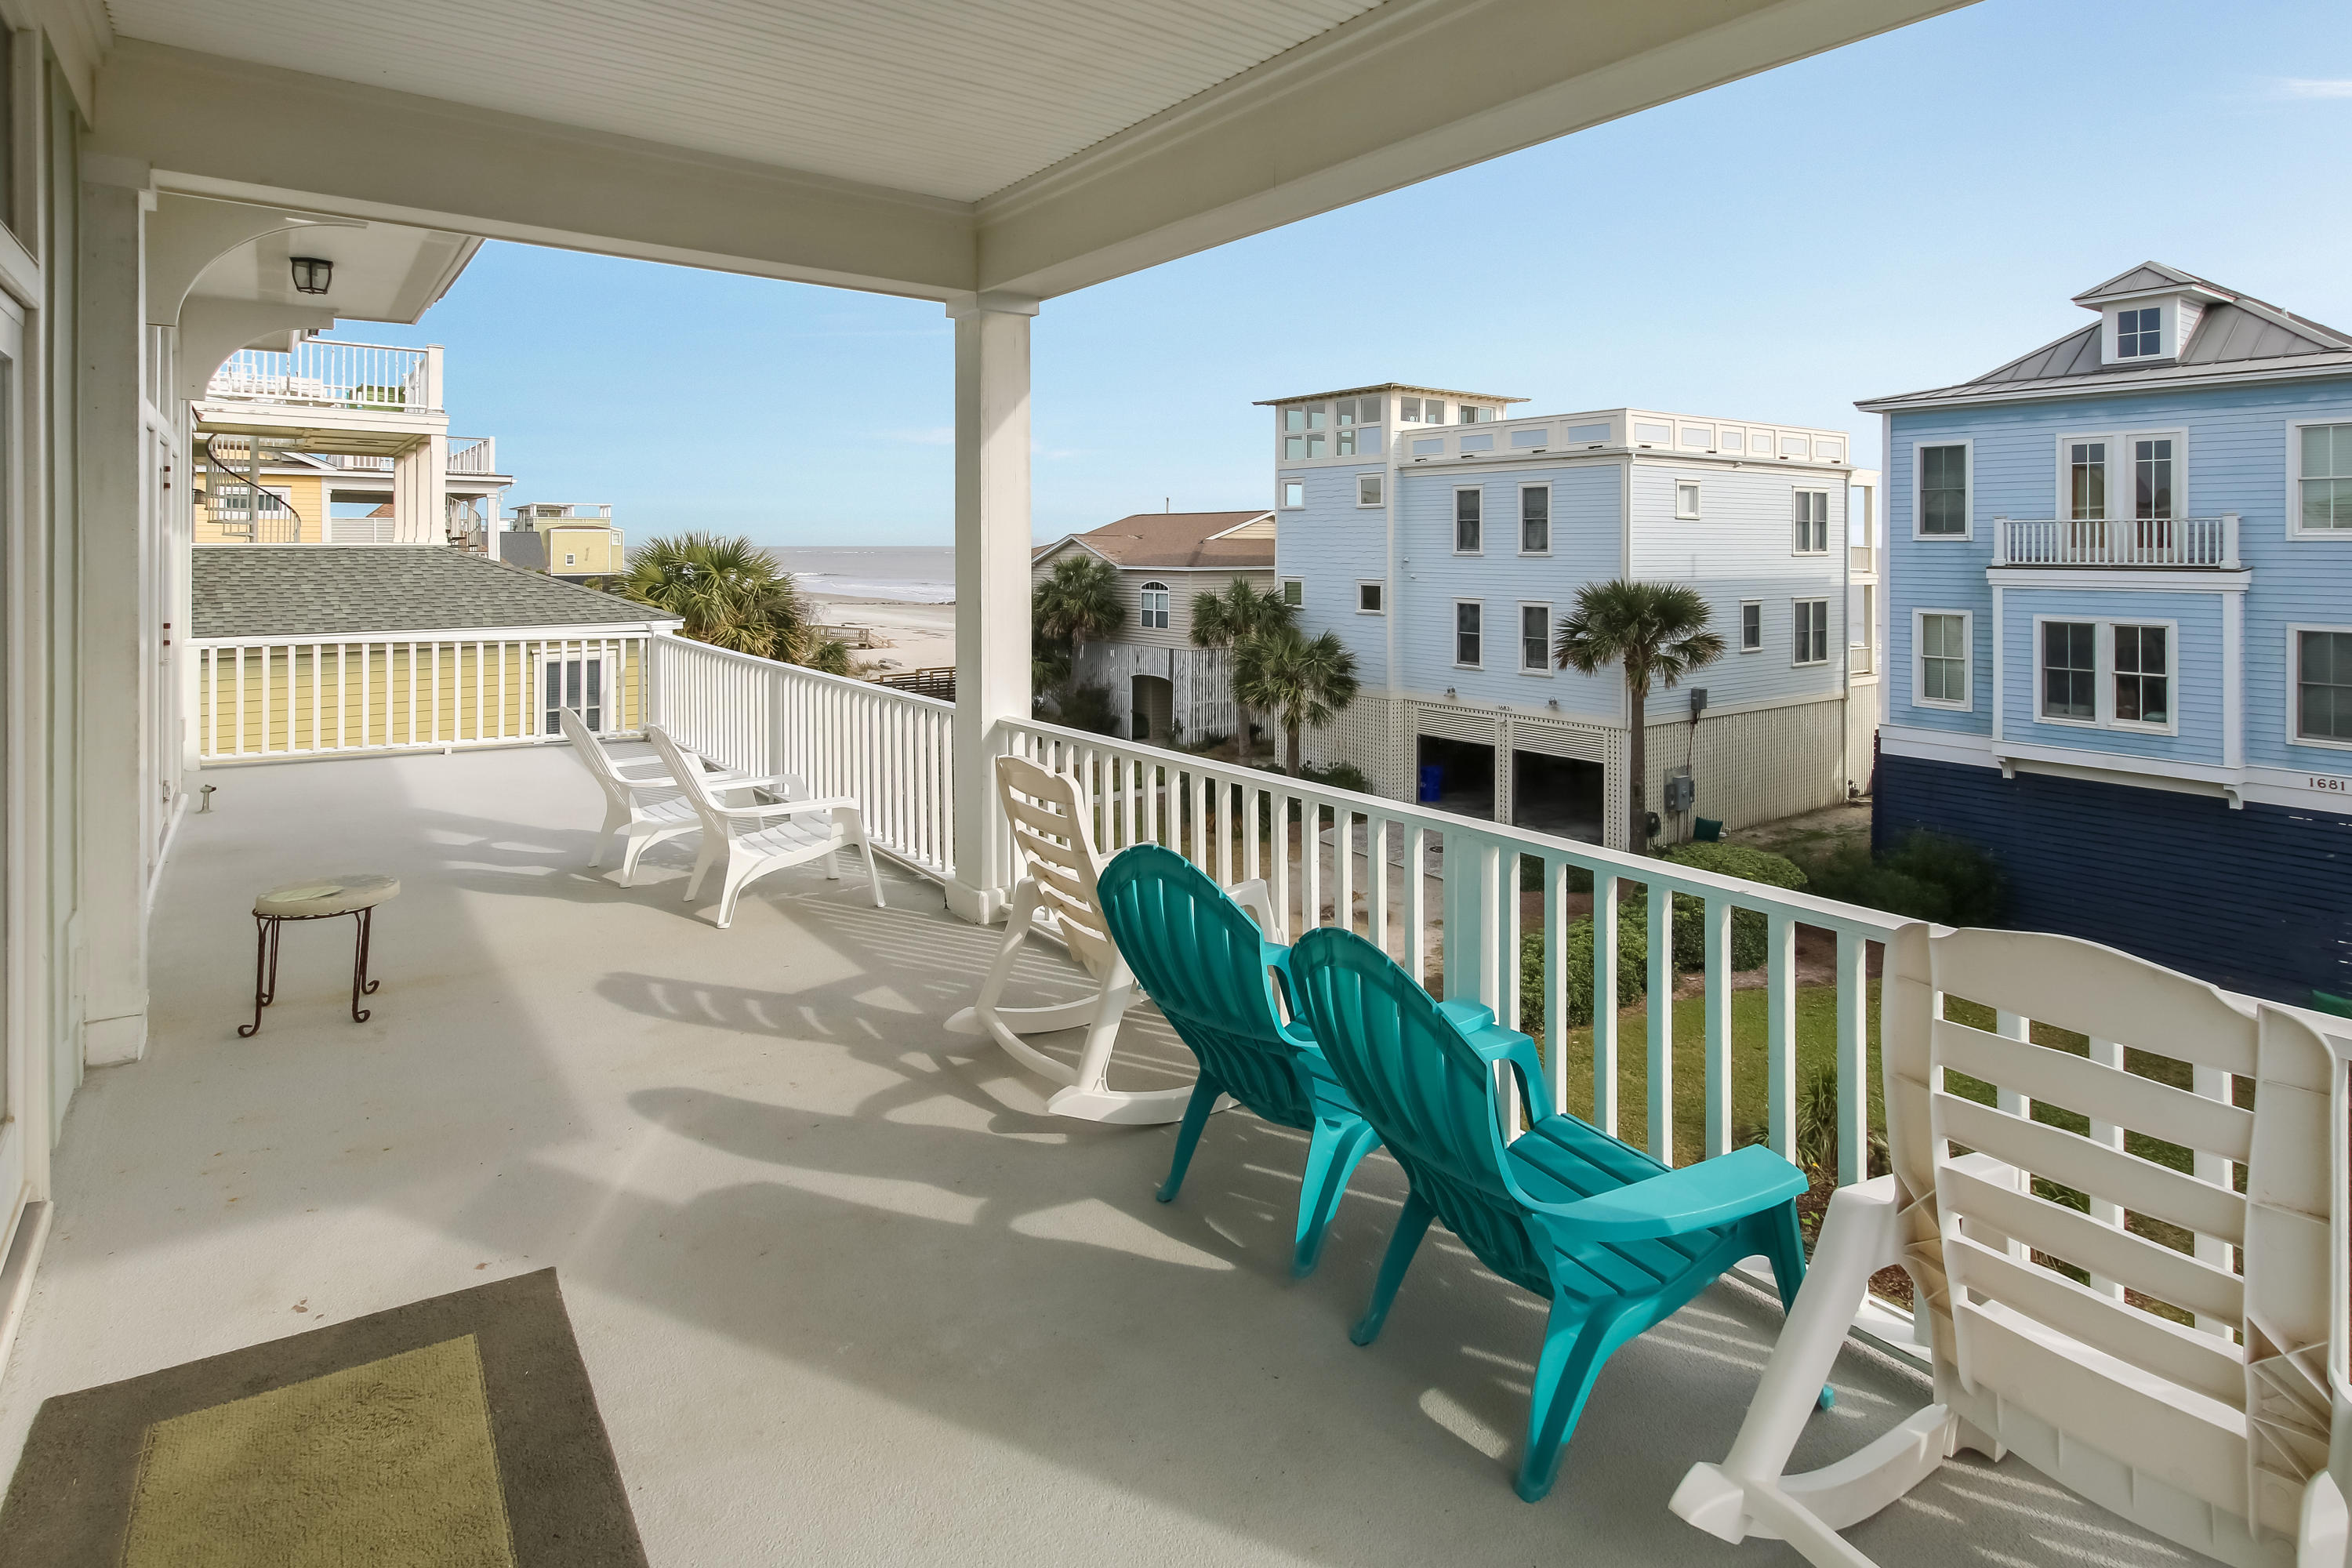 East Folly Beach Shores Homes For Sale - 1681 Ashley A, Folly Beach, SC - 21